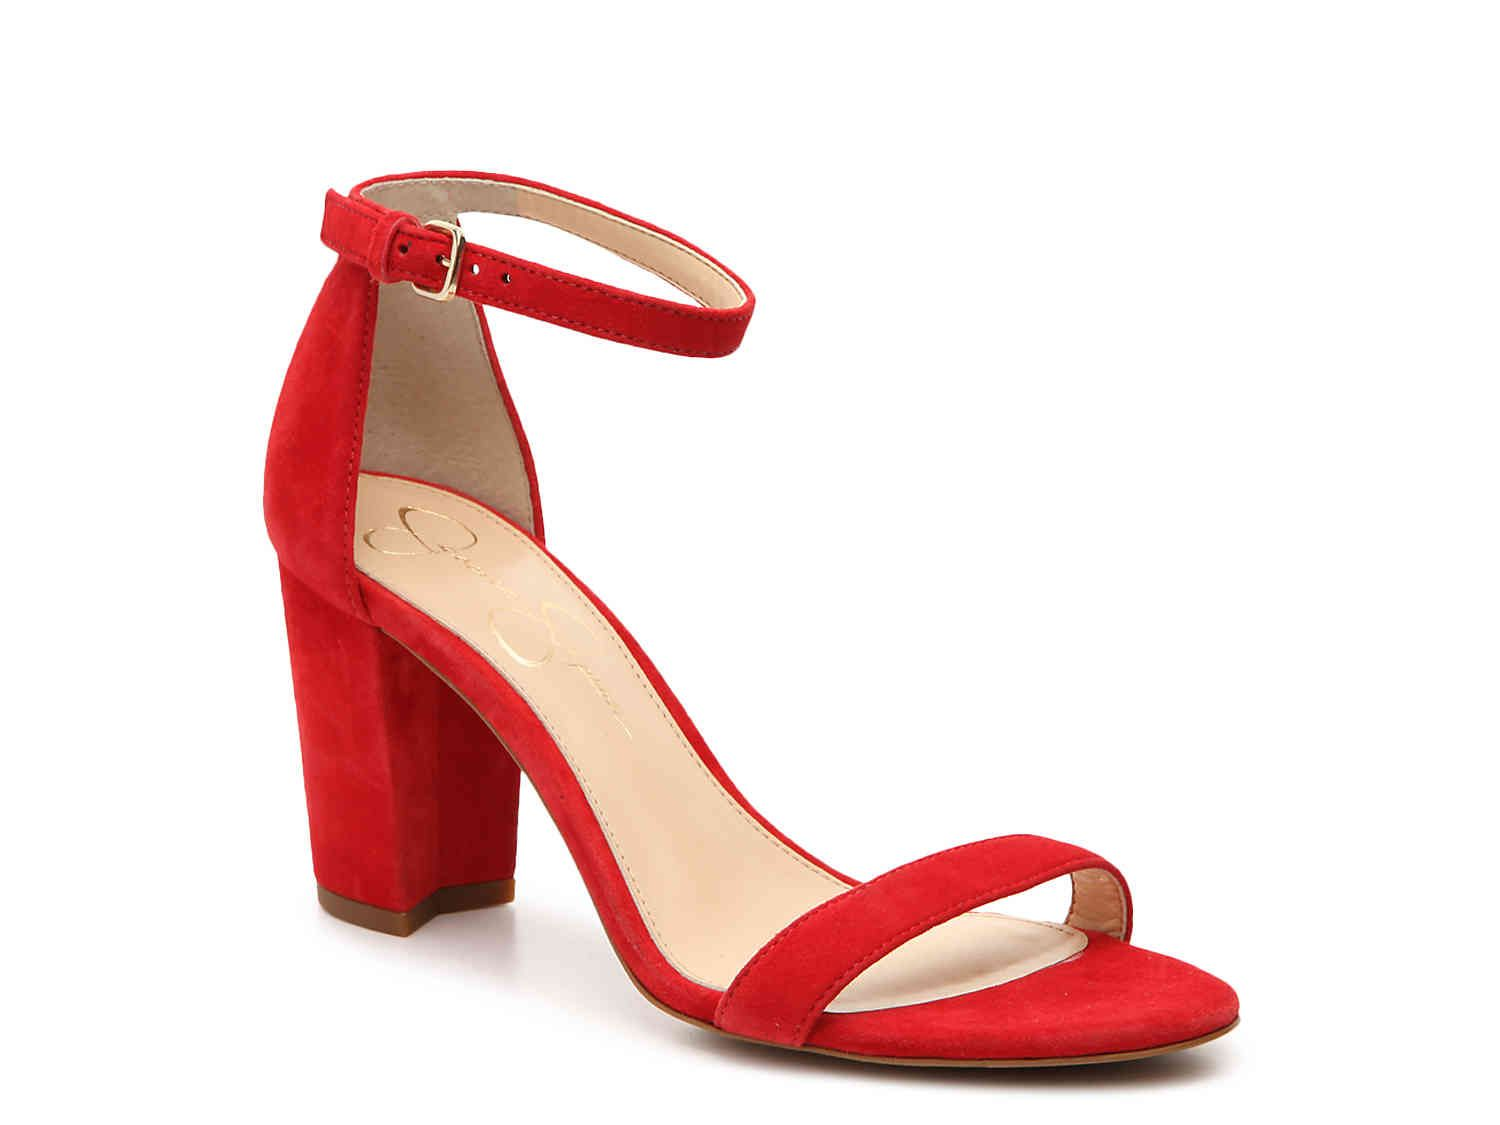 8f21678891b Monrae Sandal is the perfect red heel for a night out on Game Day ...